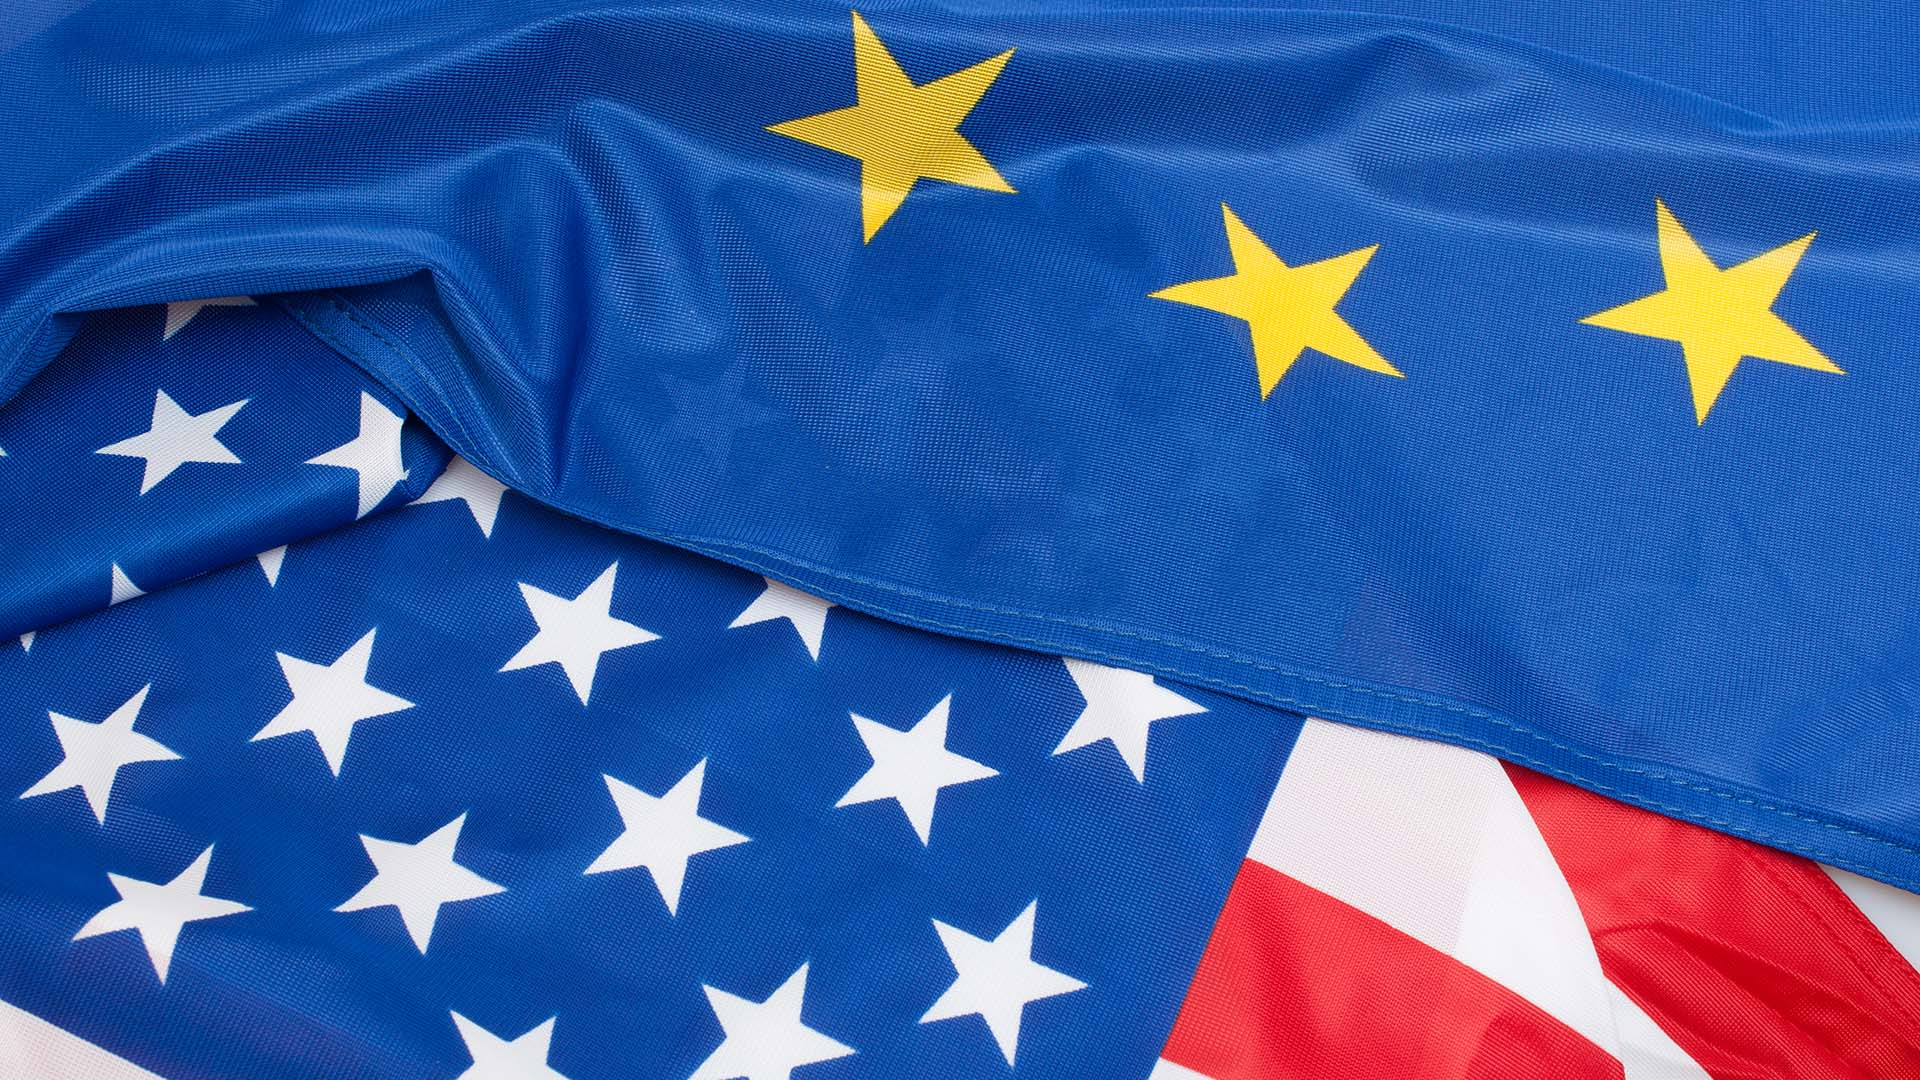 Overlay of the European Union and United States flags